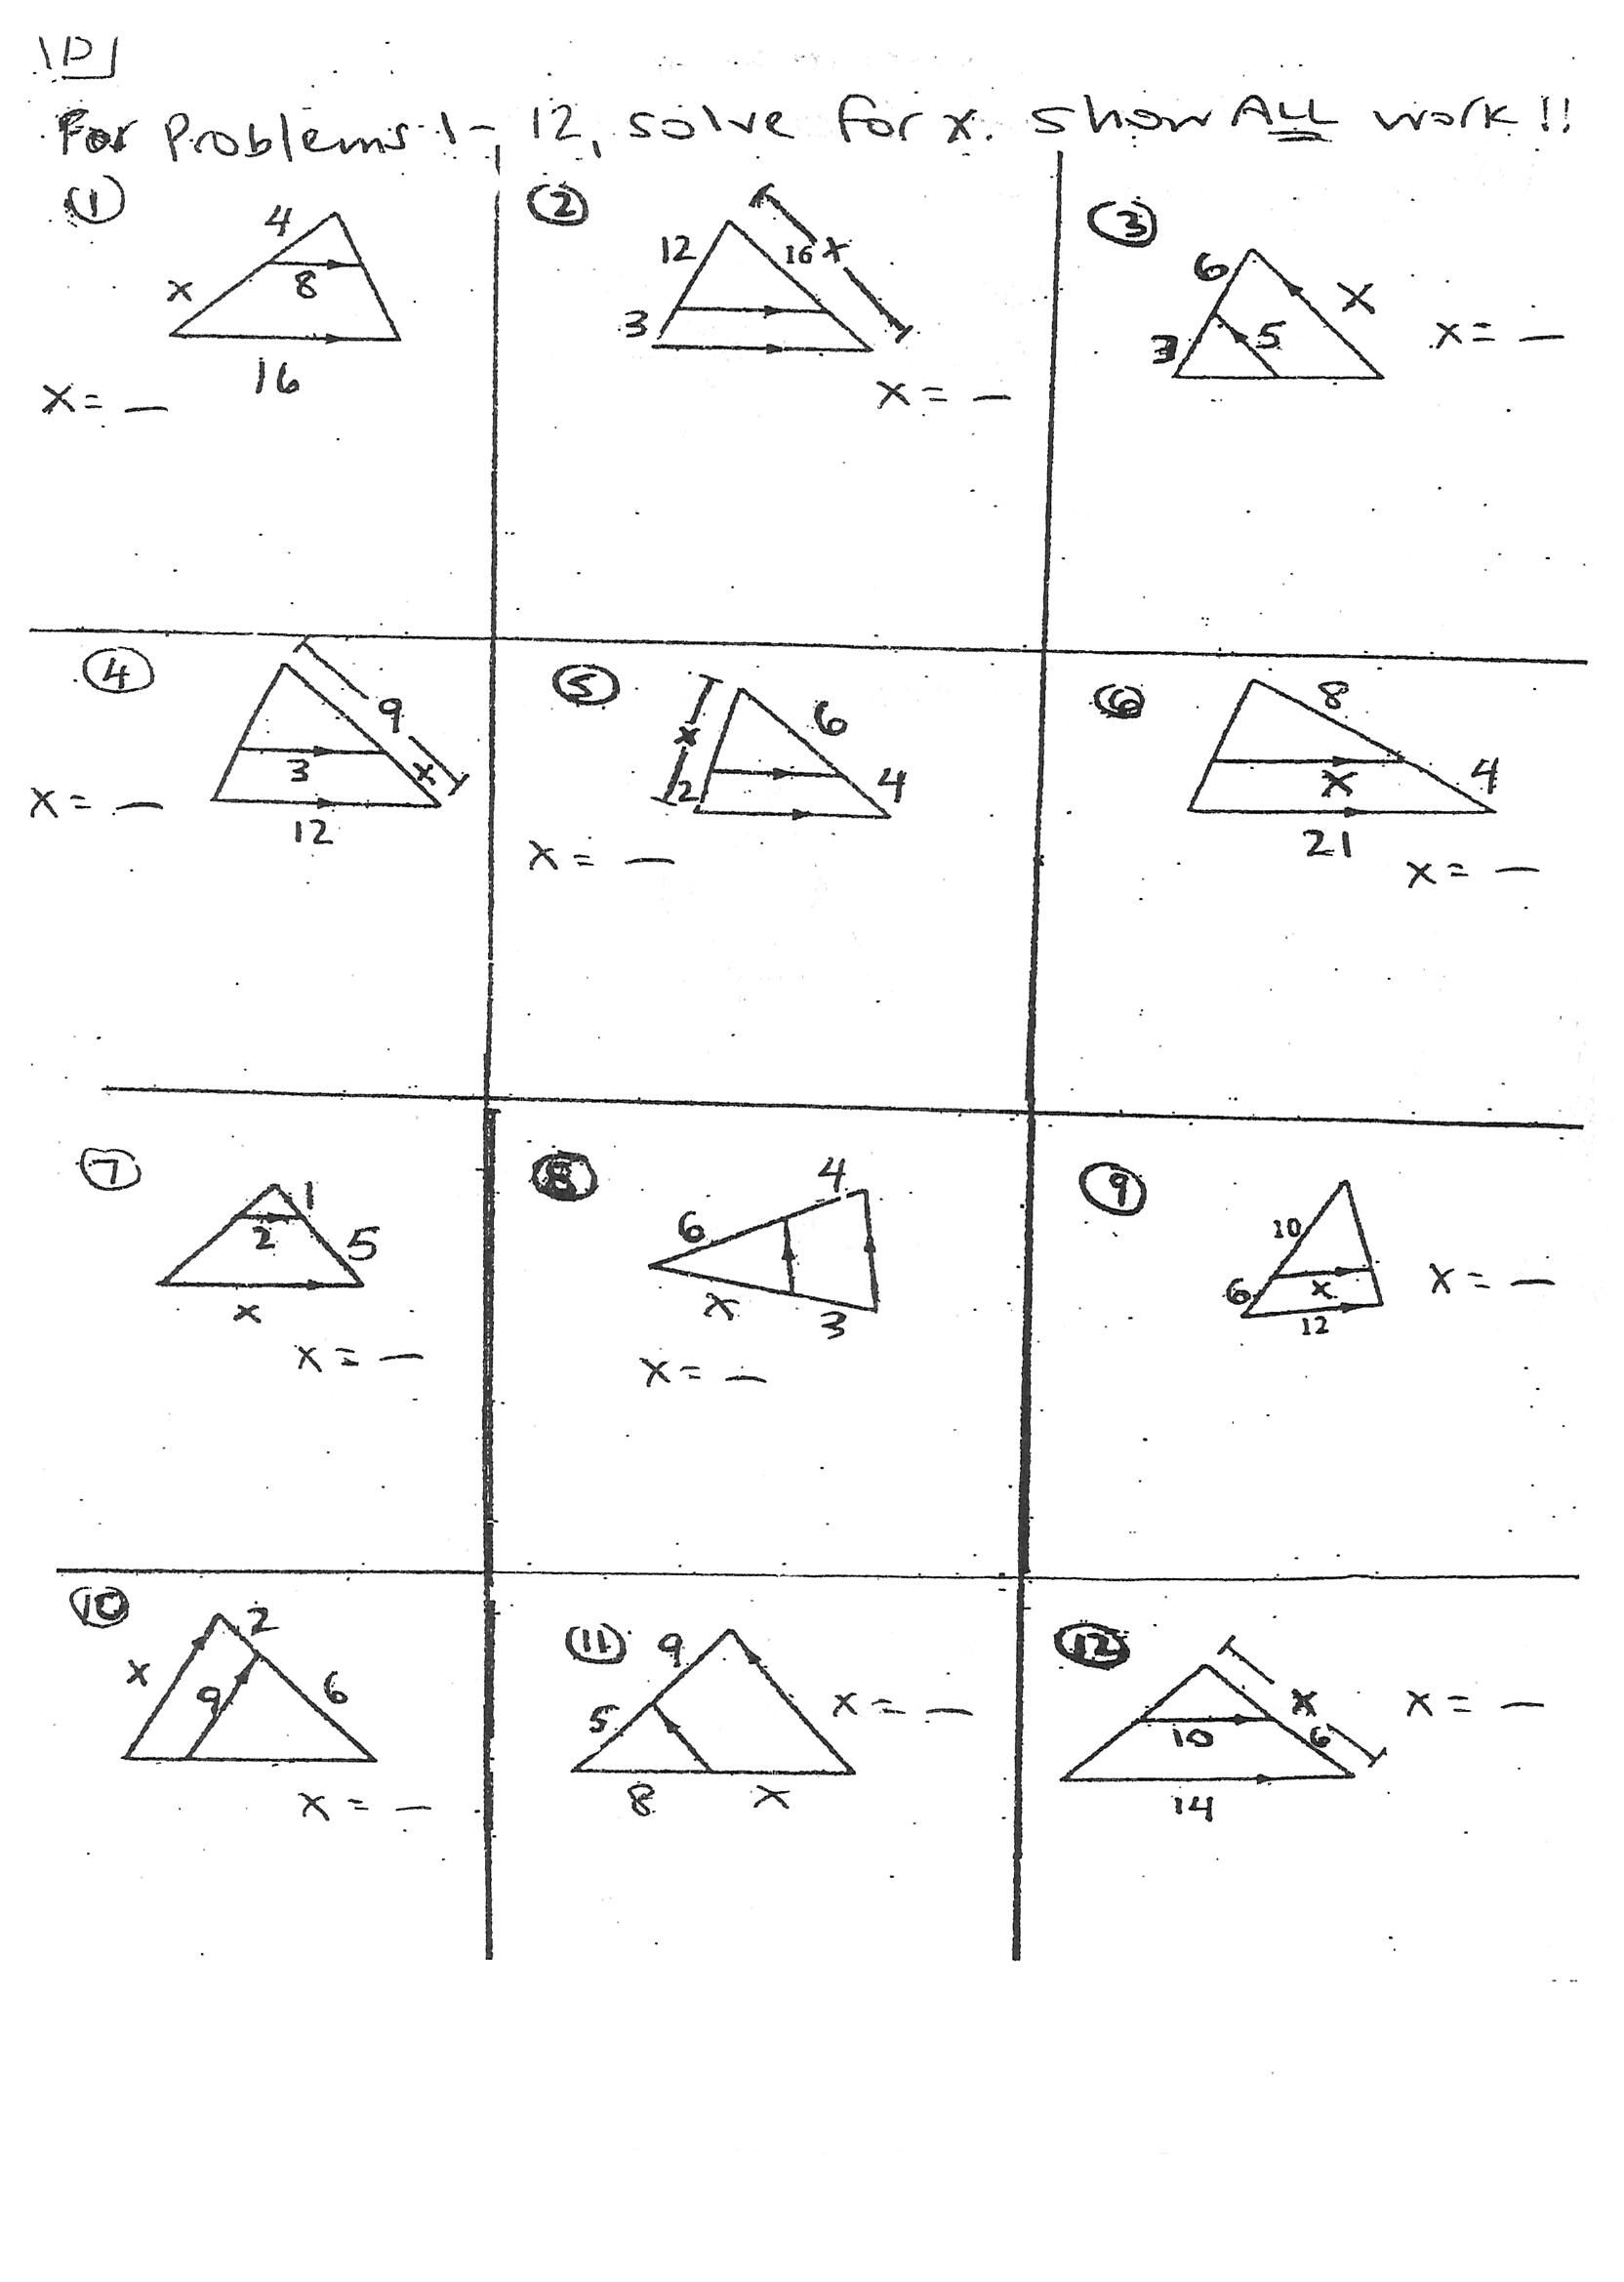 hight resolution of Geometry Similar Triangles Worksheet - Promotiontablecovers